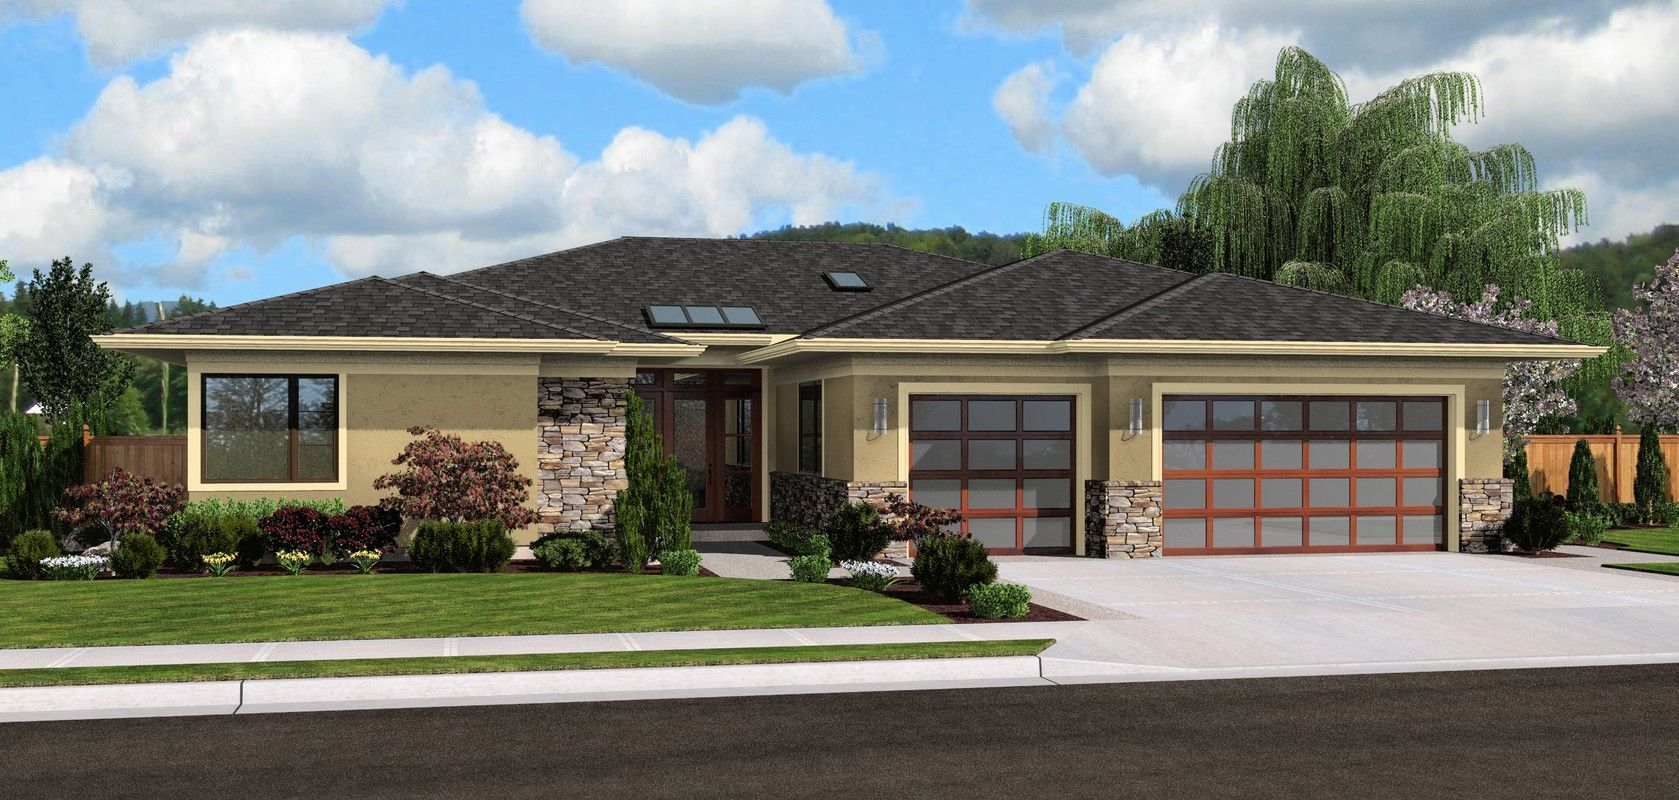 Mascord plan 1245 the riverside printed the home for Contemporary ranch plans